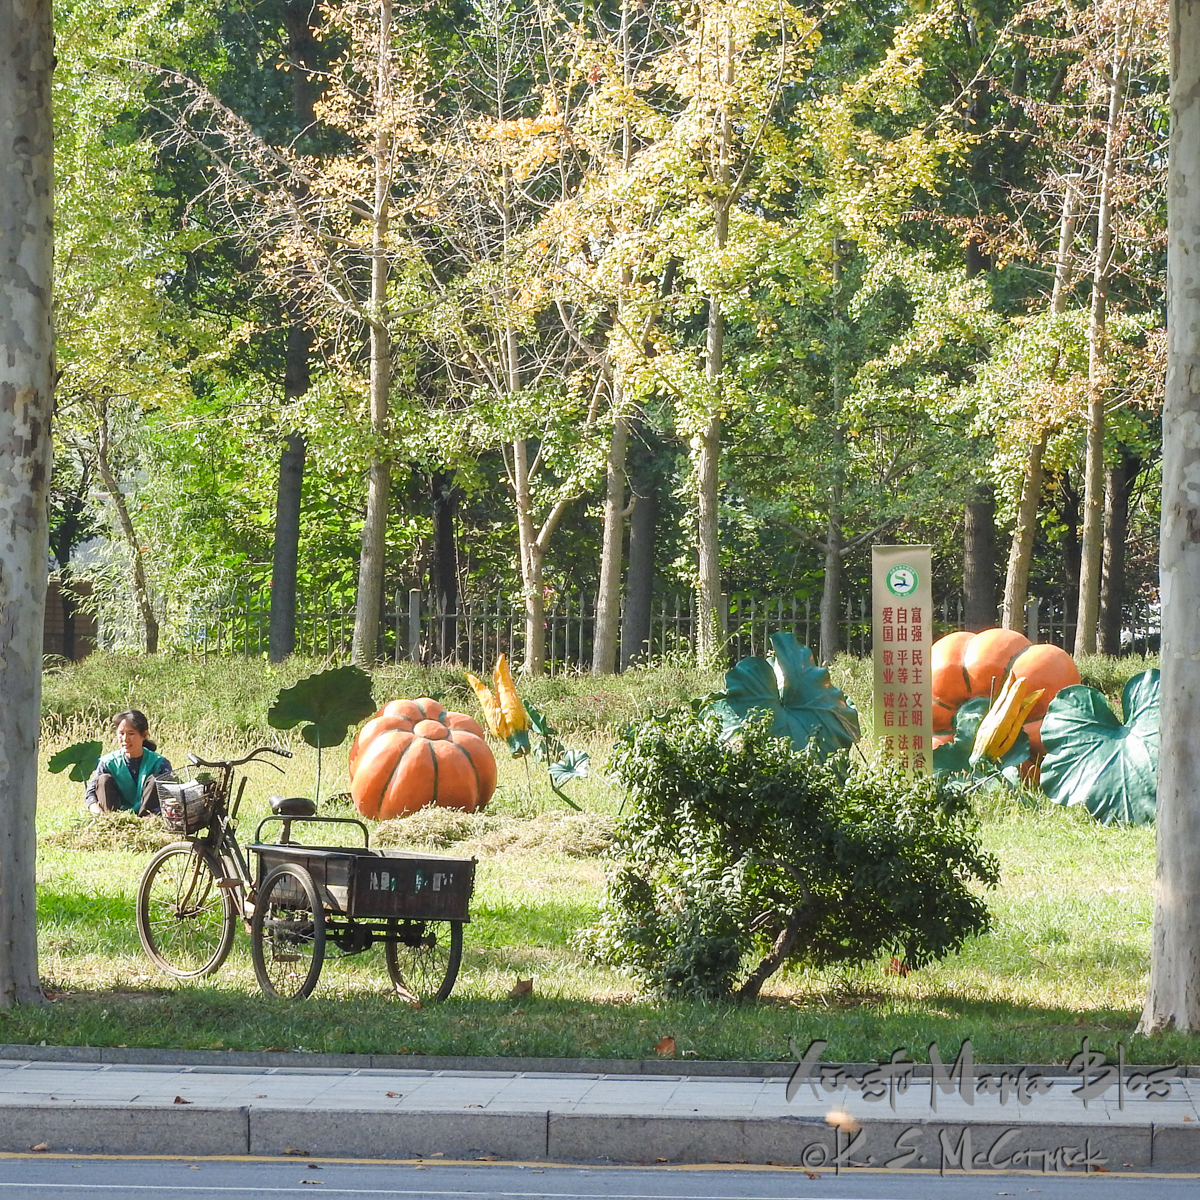 Woman sitting in the grass beside a sculpture of a pumpkin, including vine and blossoms, her three wheeled work trike is in the foreground.